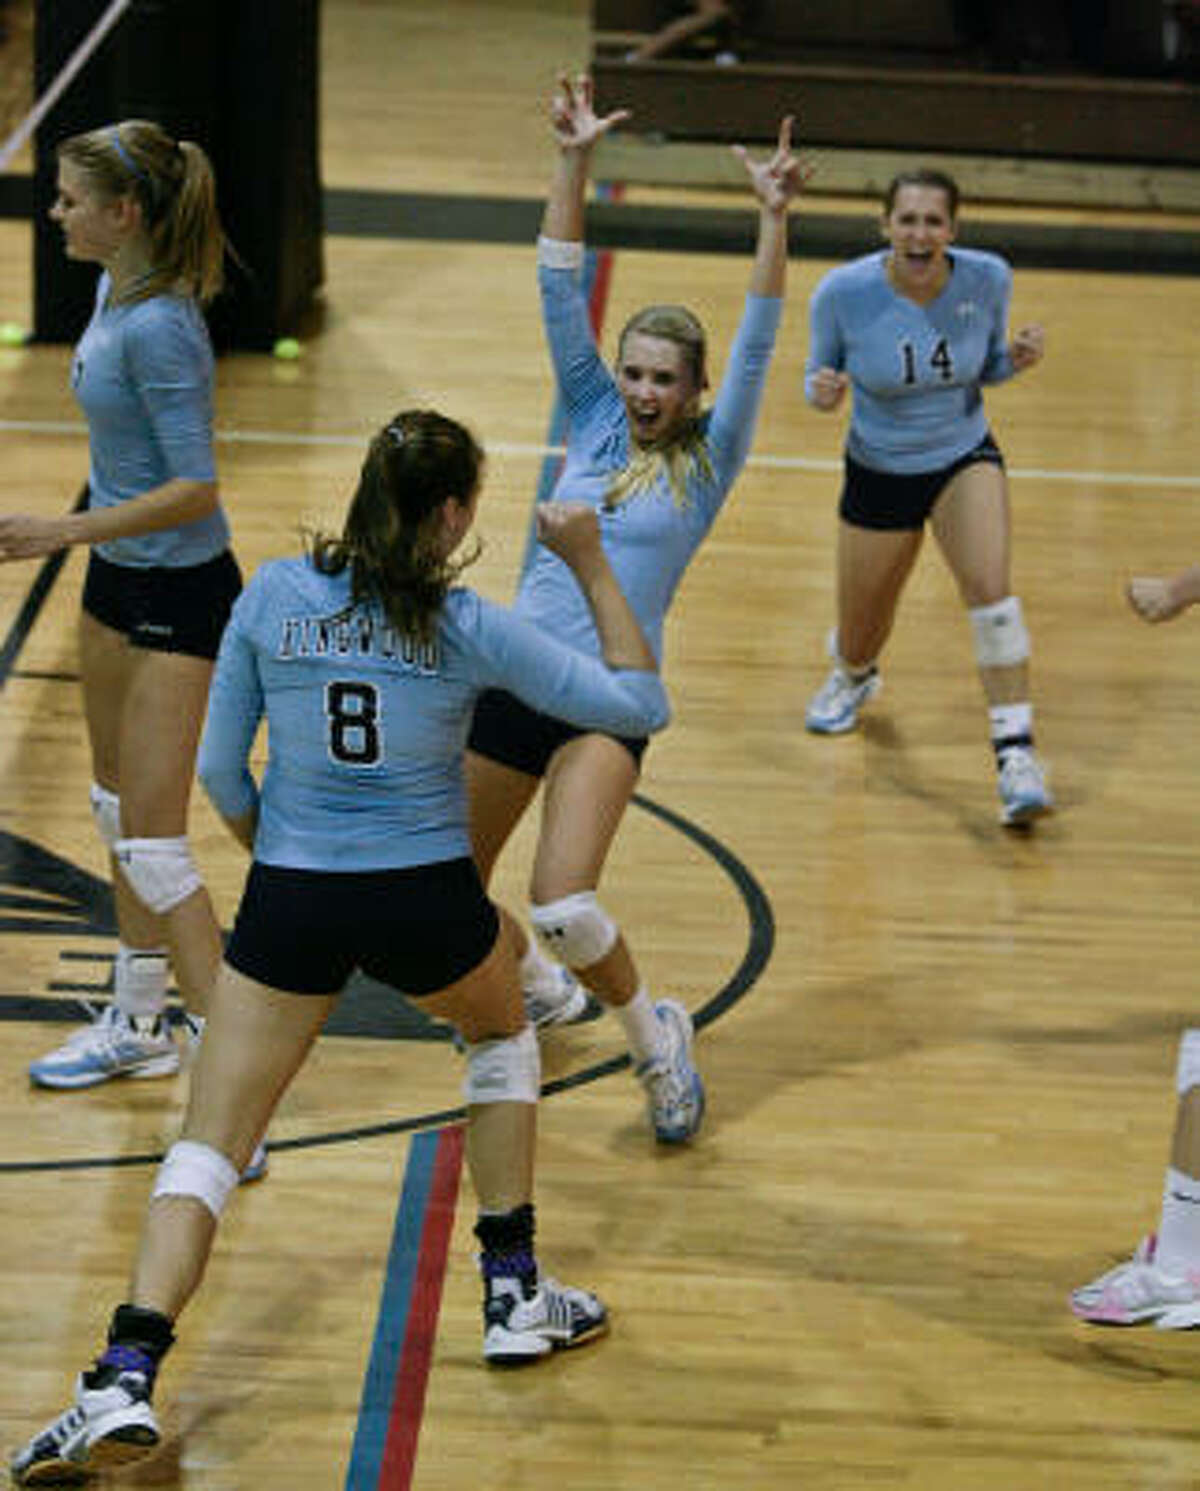 Kingwood players celebrate a point during their sweep of Eisenhower on Tuesday night.